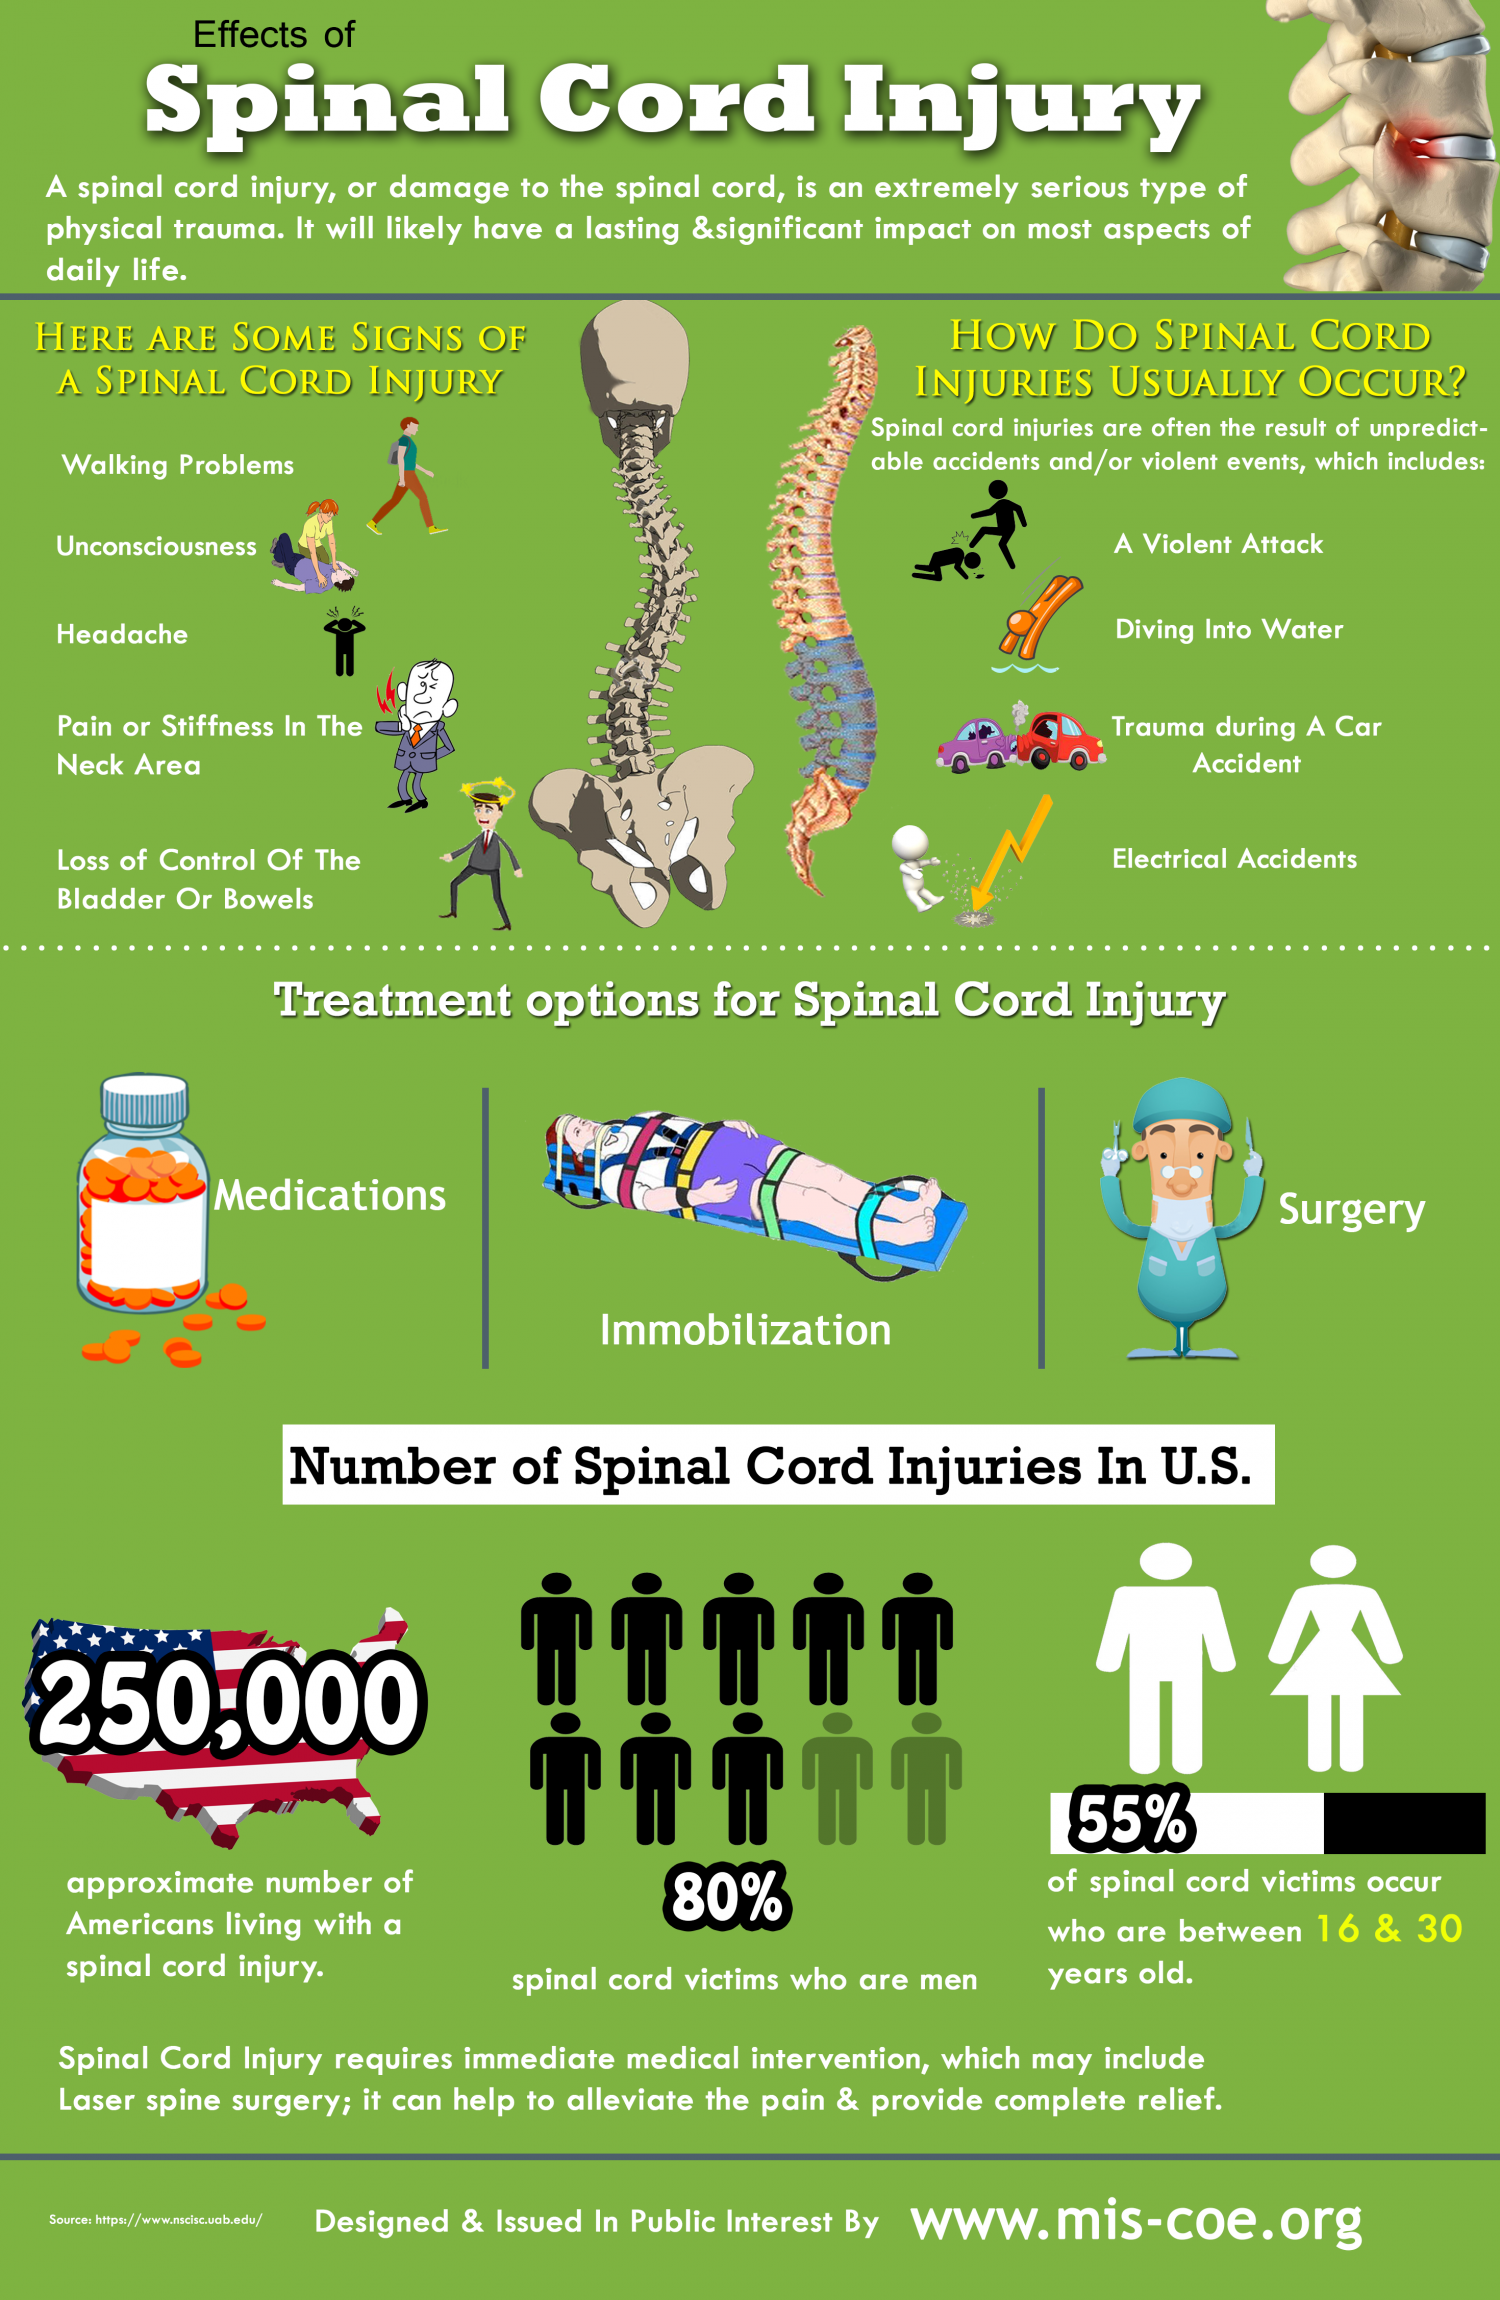 Effects Of Spinal Cord Injury Visual